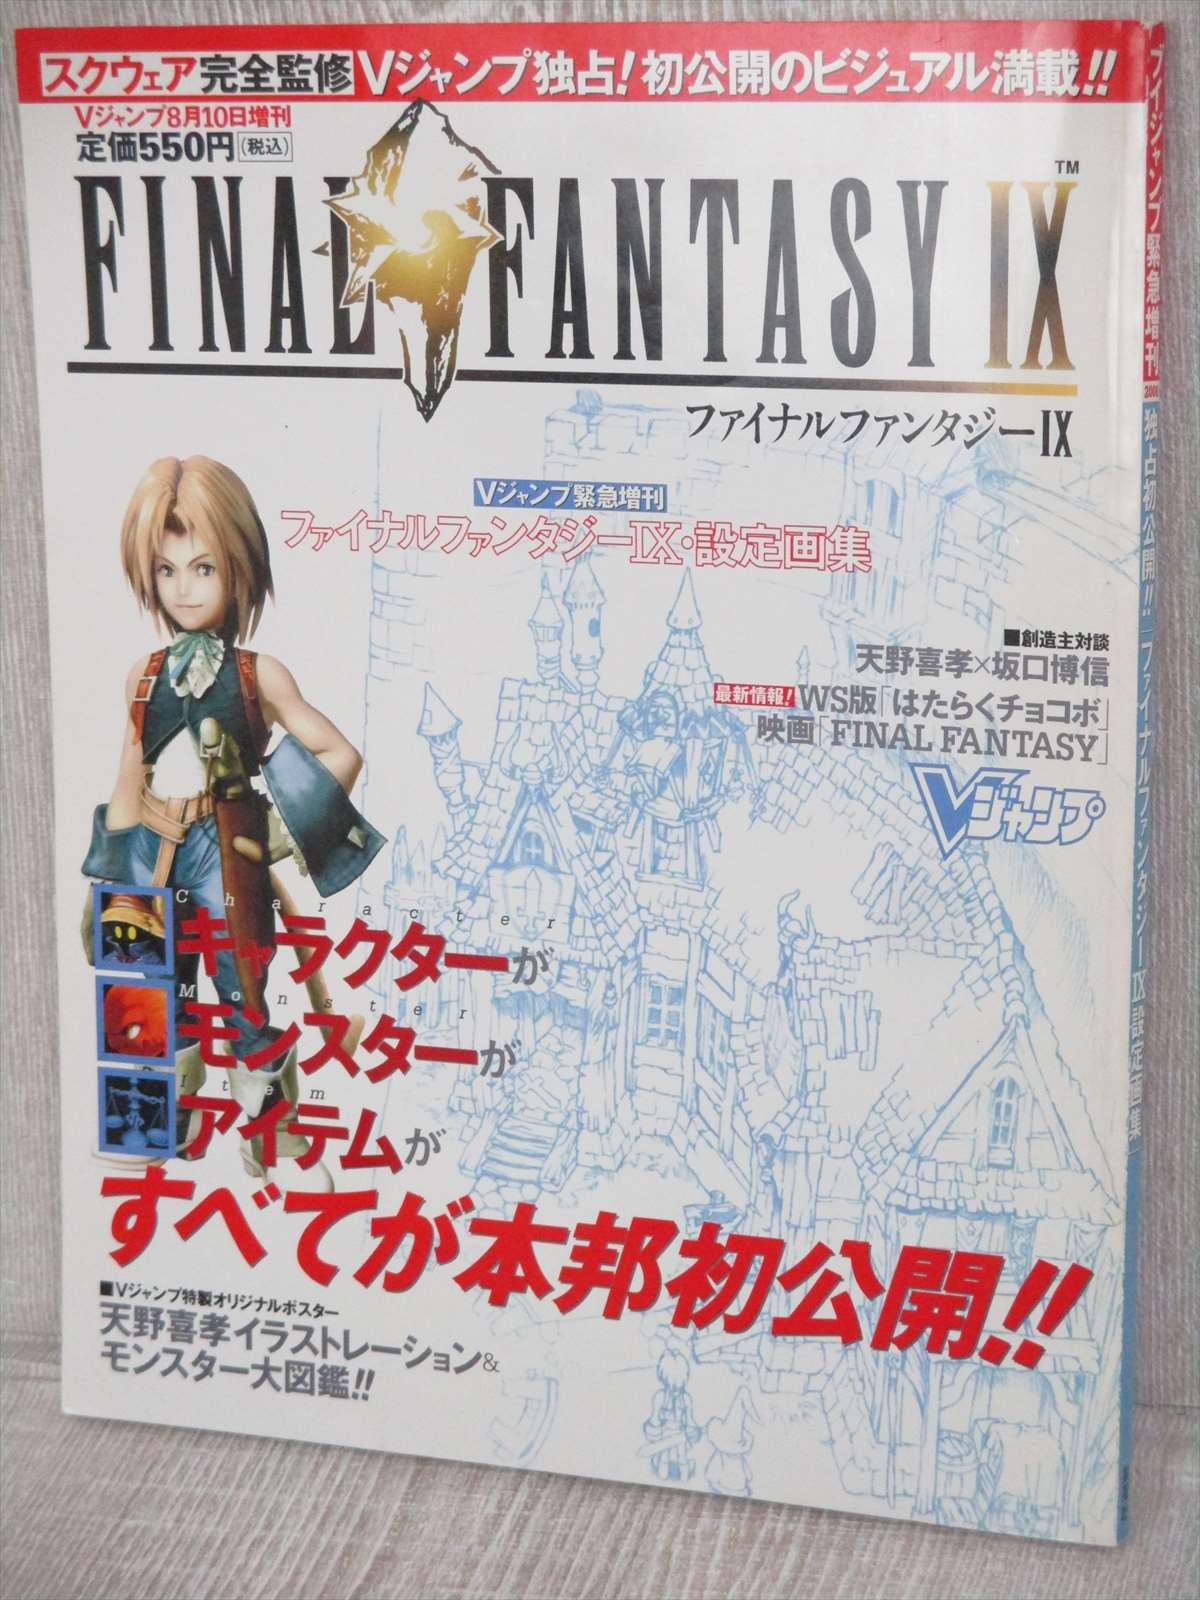 Details about FINAL FANTASY IX 9 w/Poster Art Works Game Guide Fan Book PS  2000 VJ